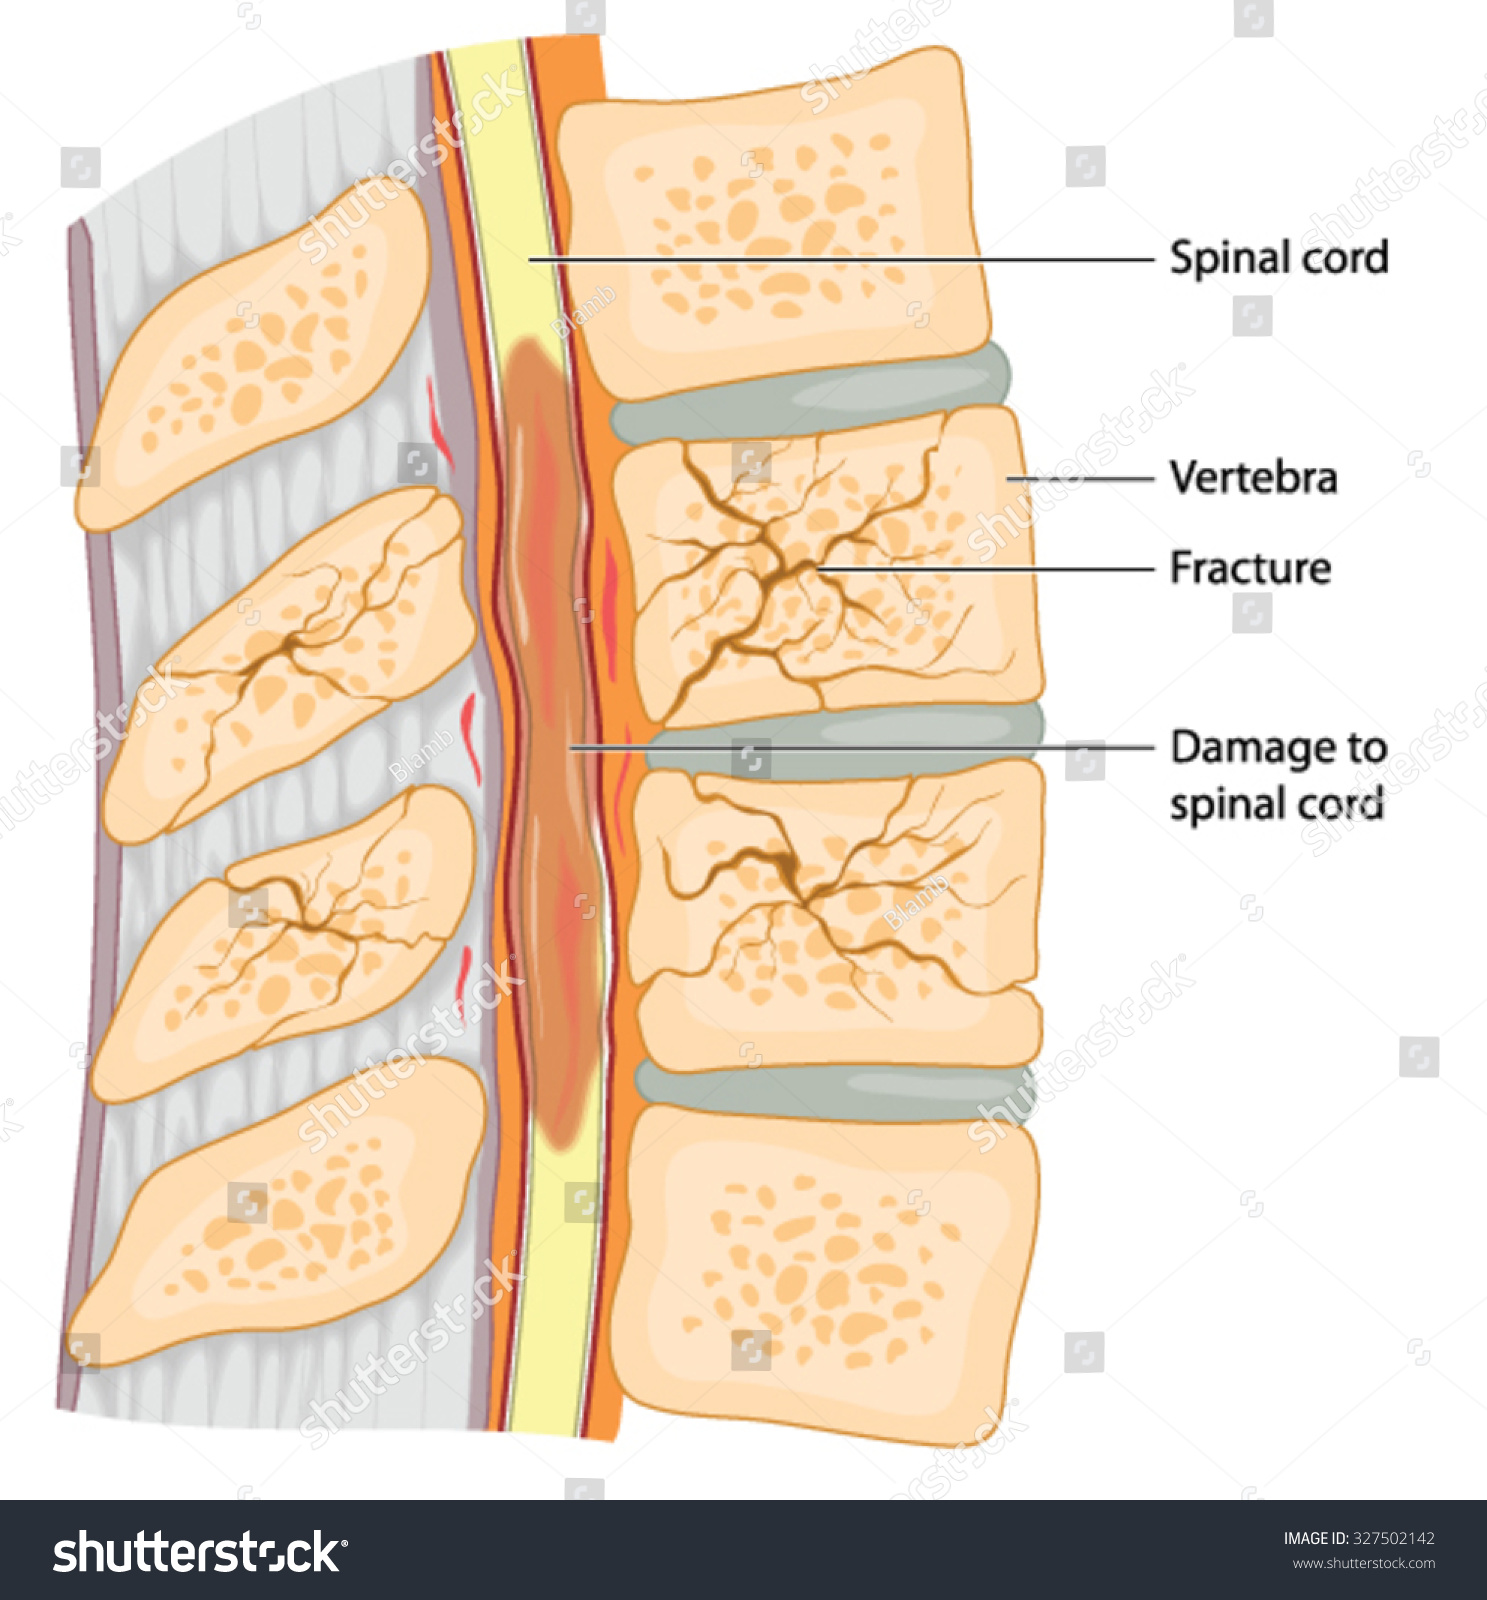 hight resolution of cross section through the spinal column showing fractured vertebrae and damage to the spinal cord